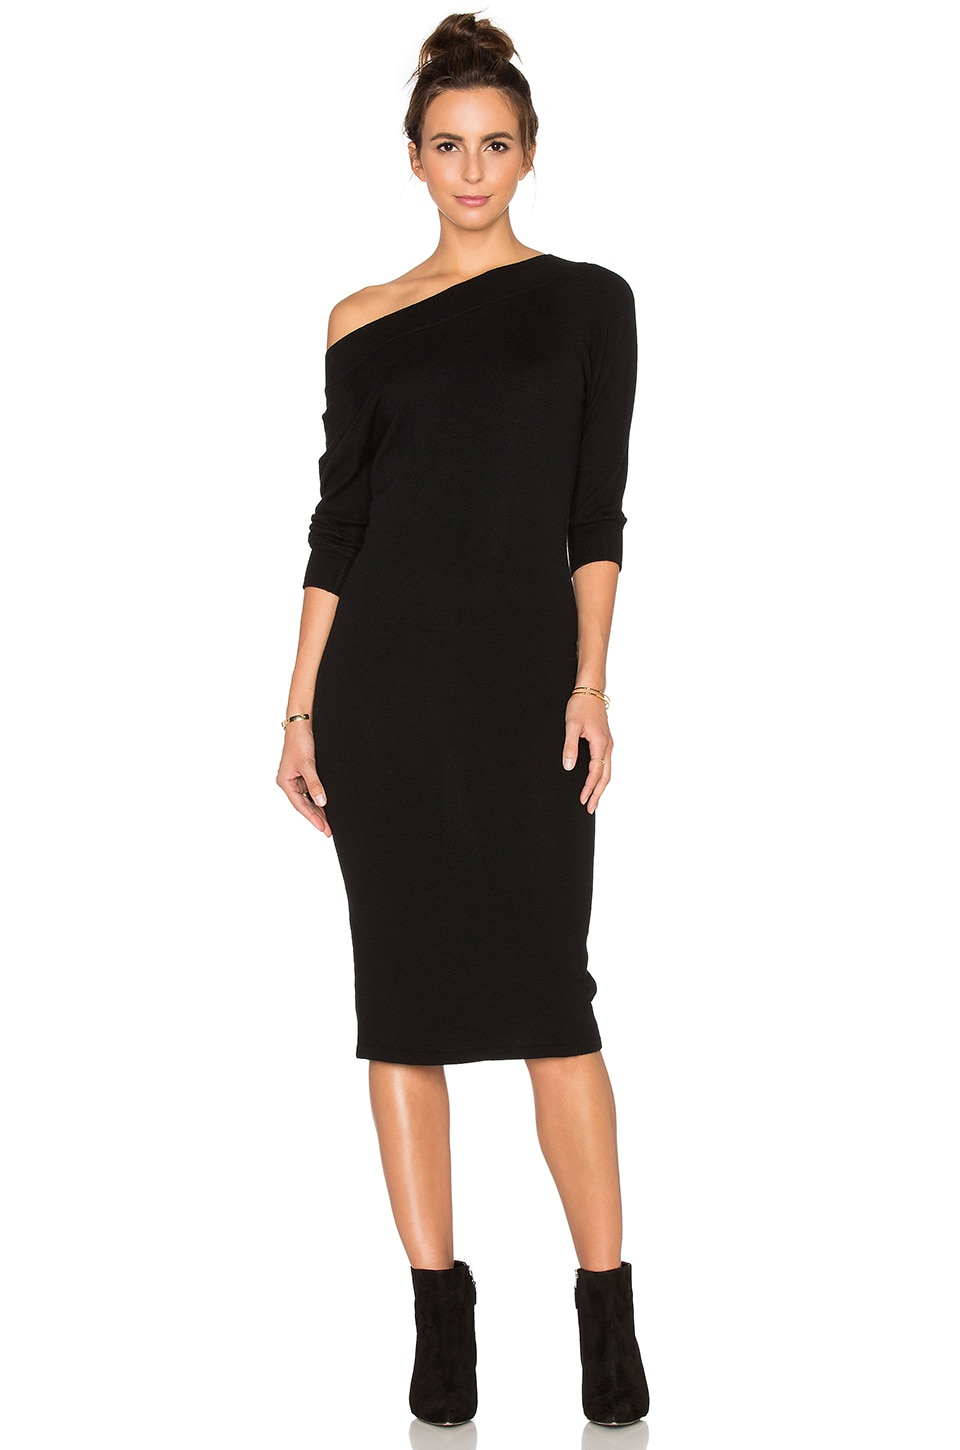 Autumn Cashmere Off Shoulder Sweater Dress in Black | REVOLVE